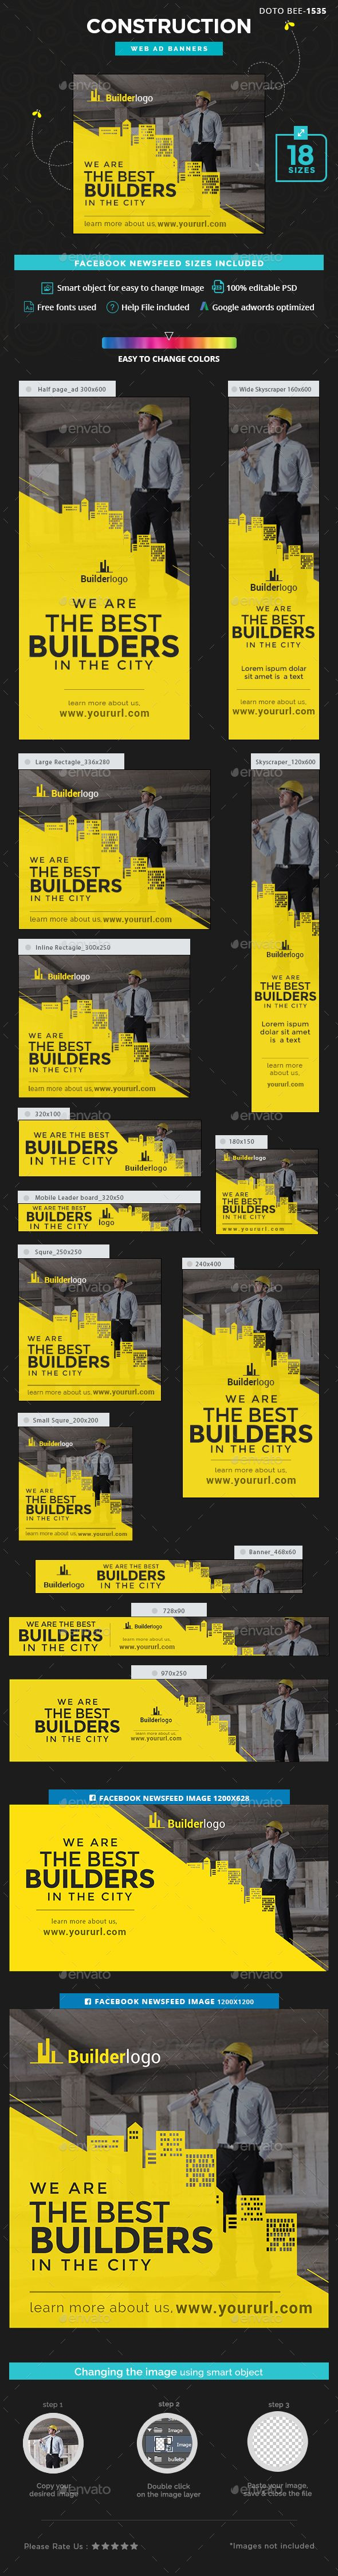 Construction Banners Design - Banners & Ads Web Template PSD. Download here: https://graphicriver.net/item/construction-banners/16958004?s_rank=5&ref=yinkira